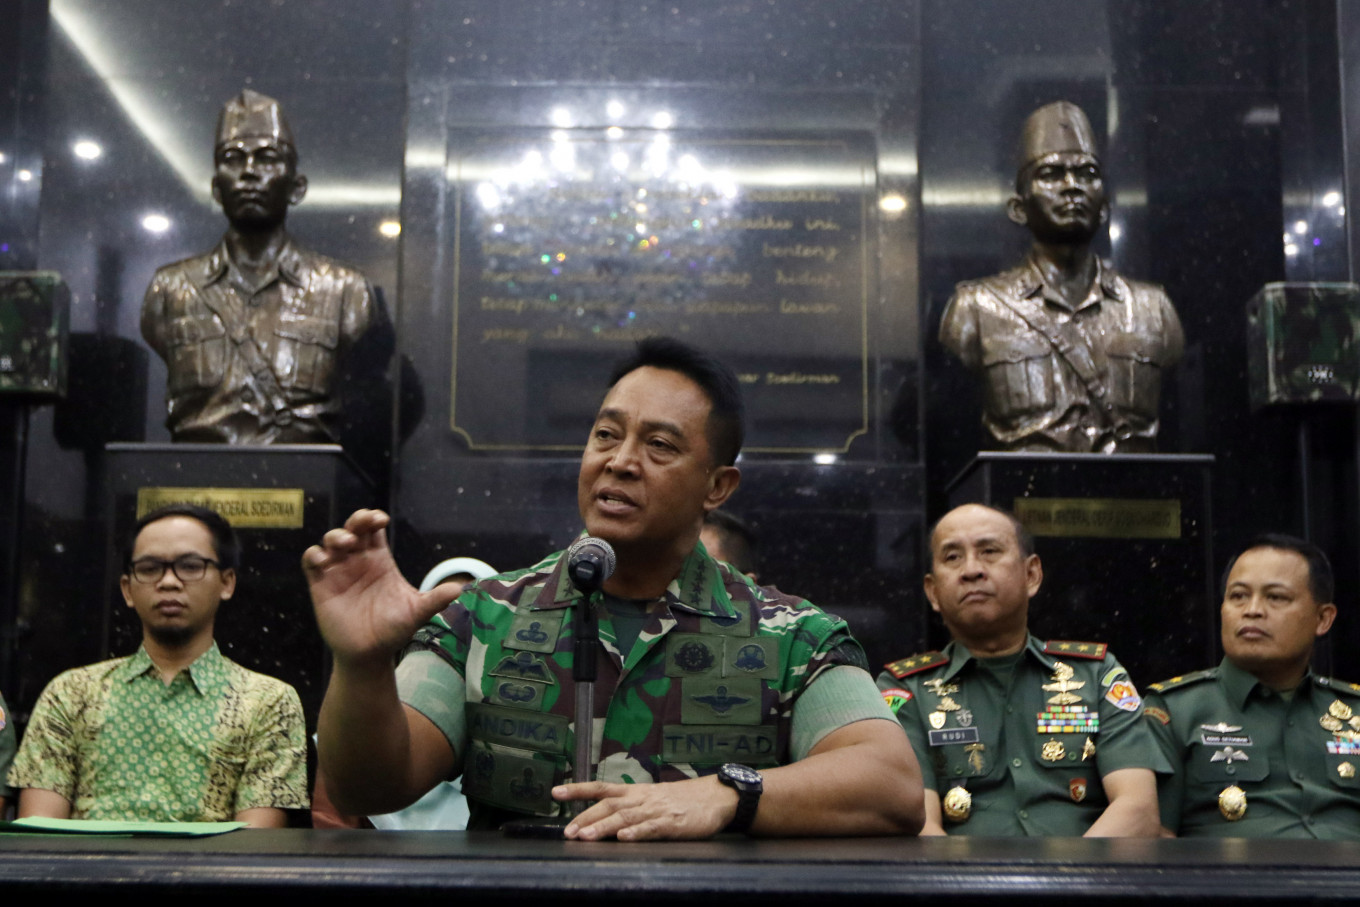 Five more soldiers punished for negative comments on Wiranto attack